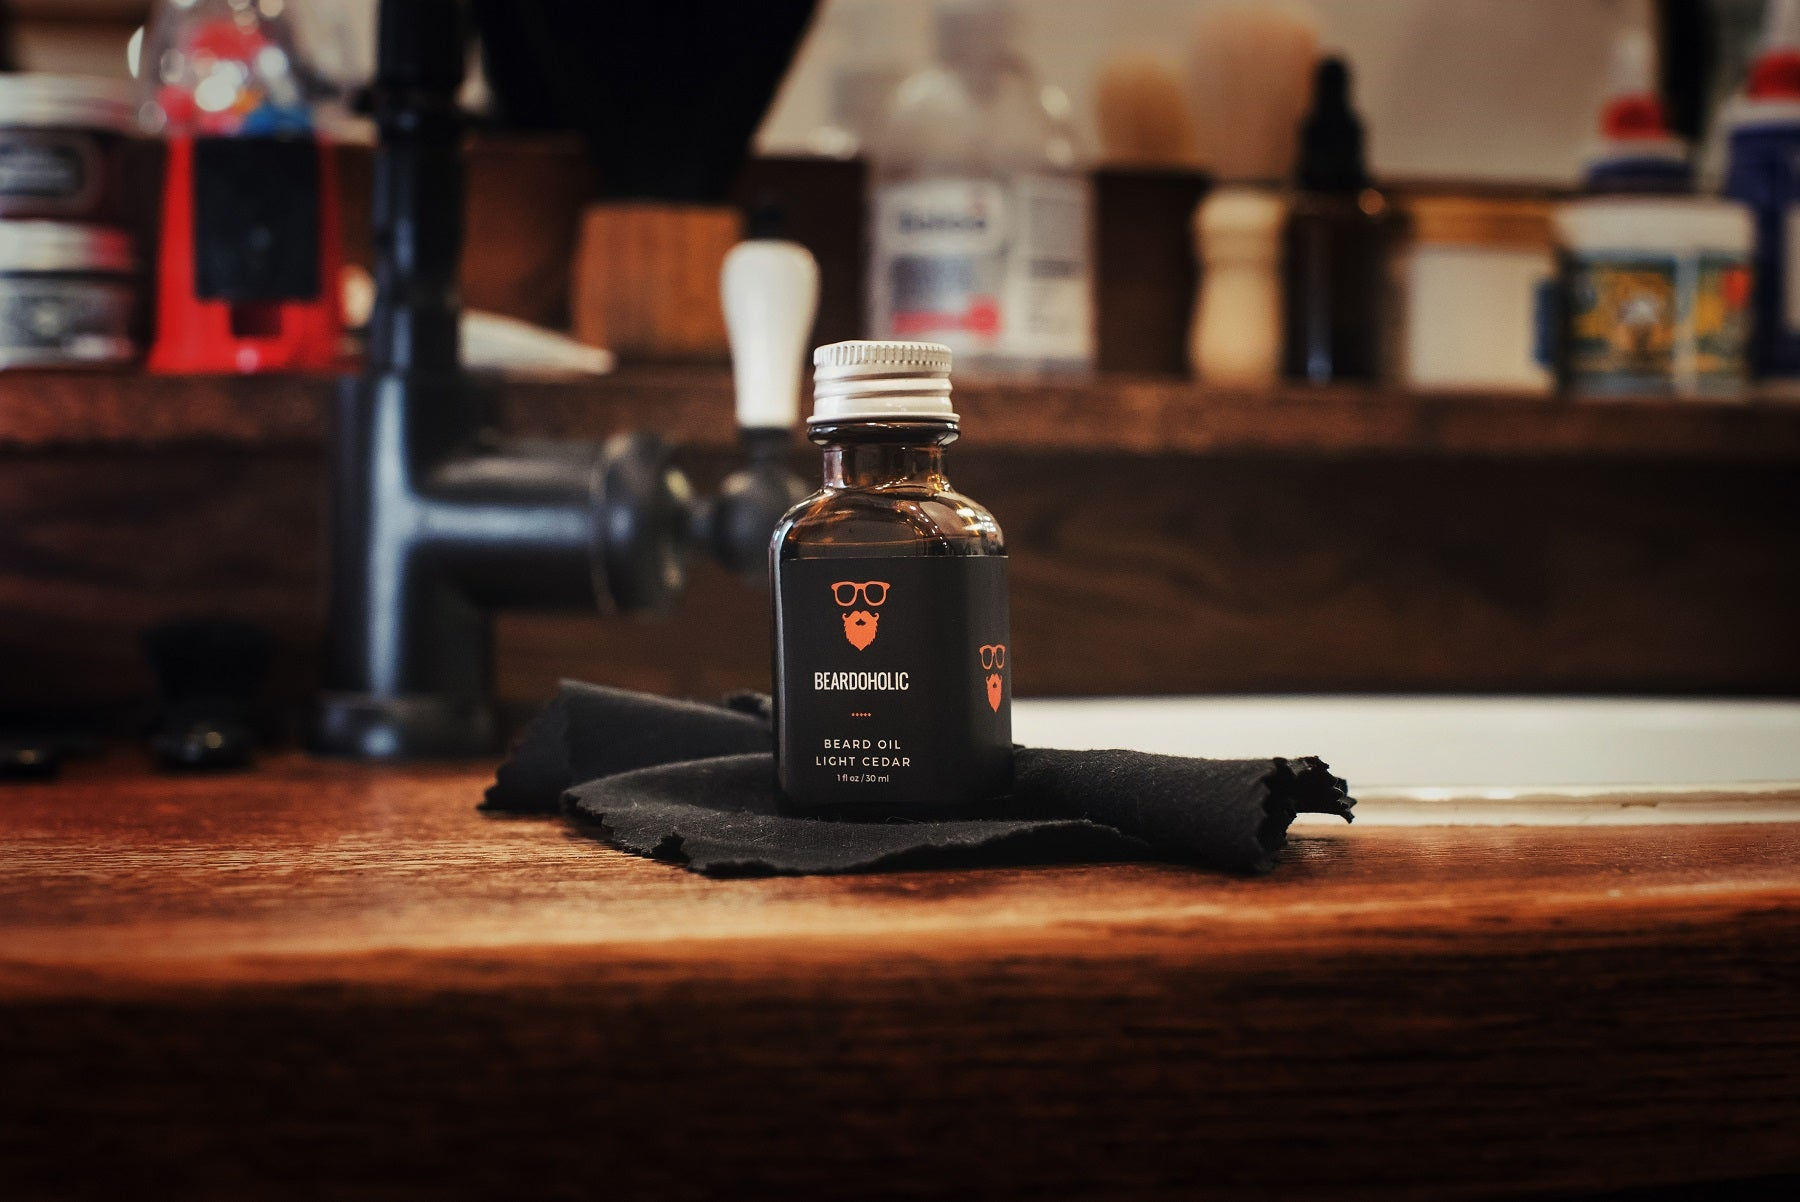 Beardoholic Beard Oil - Light Cedar